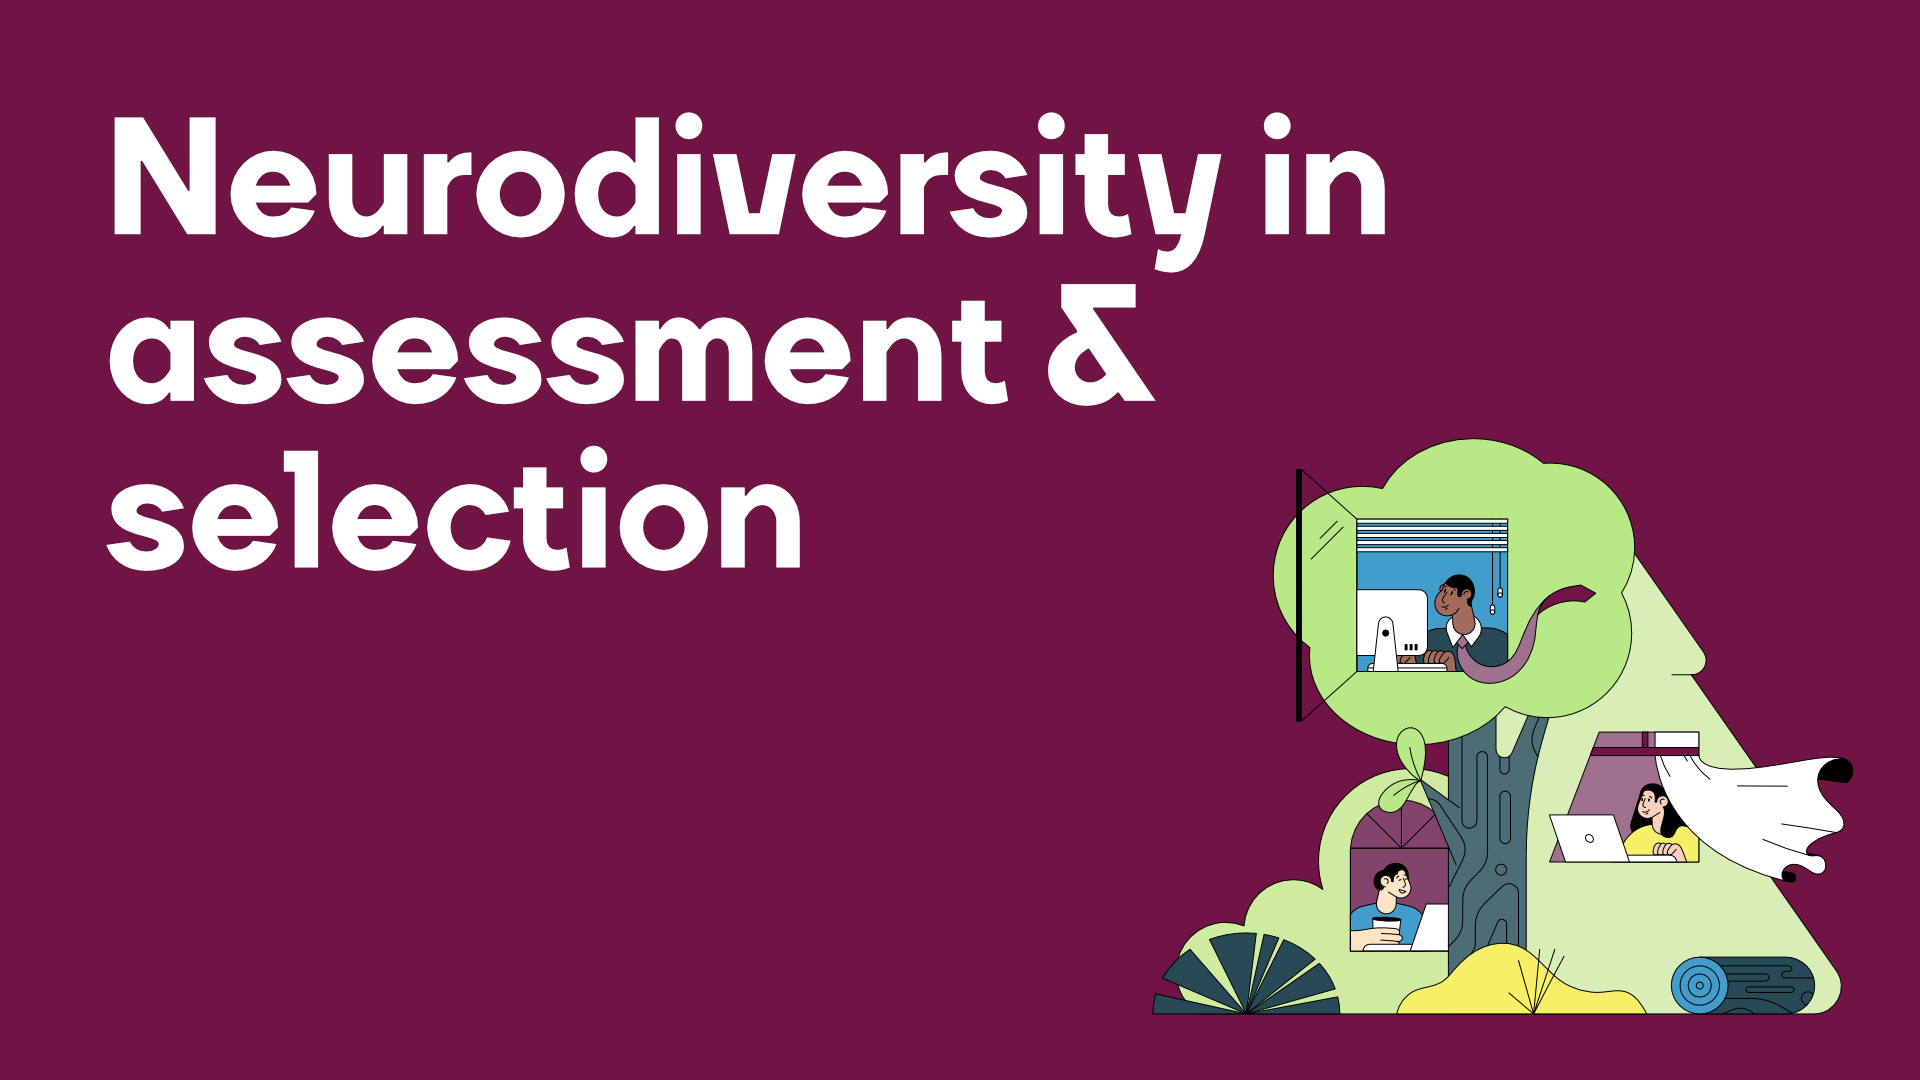 Neurodiversity in assessment and selection